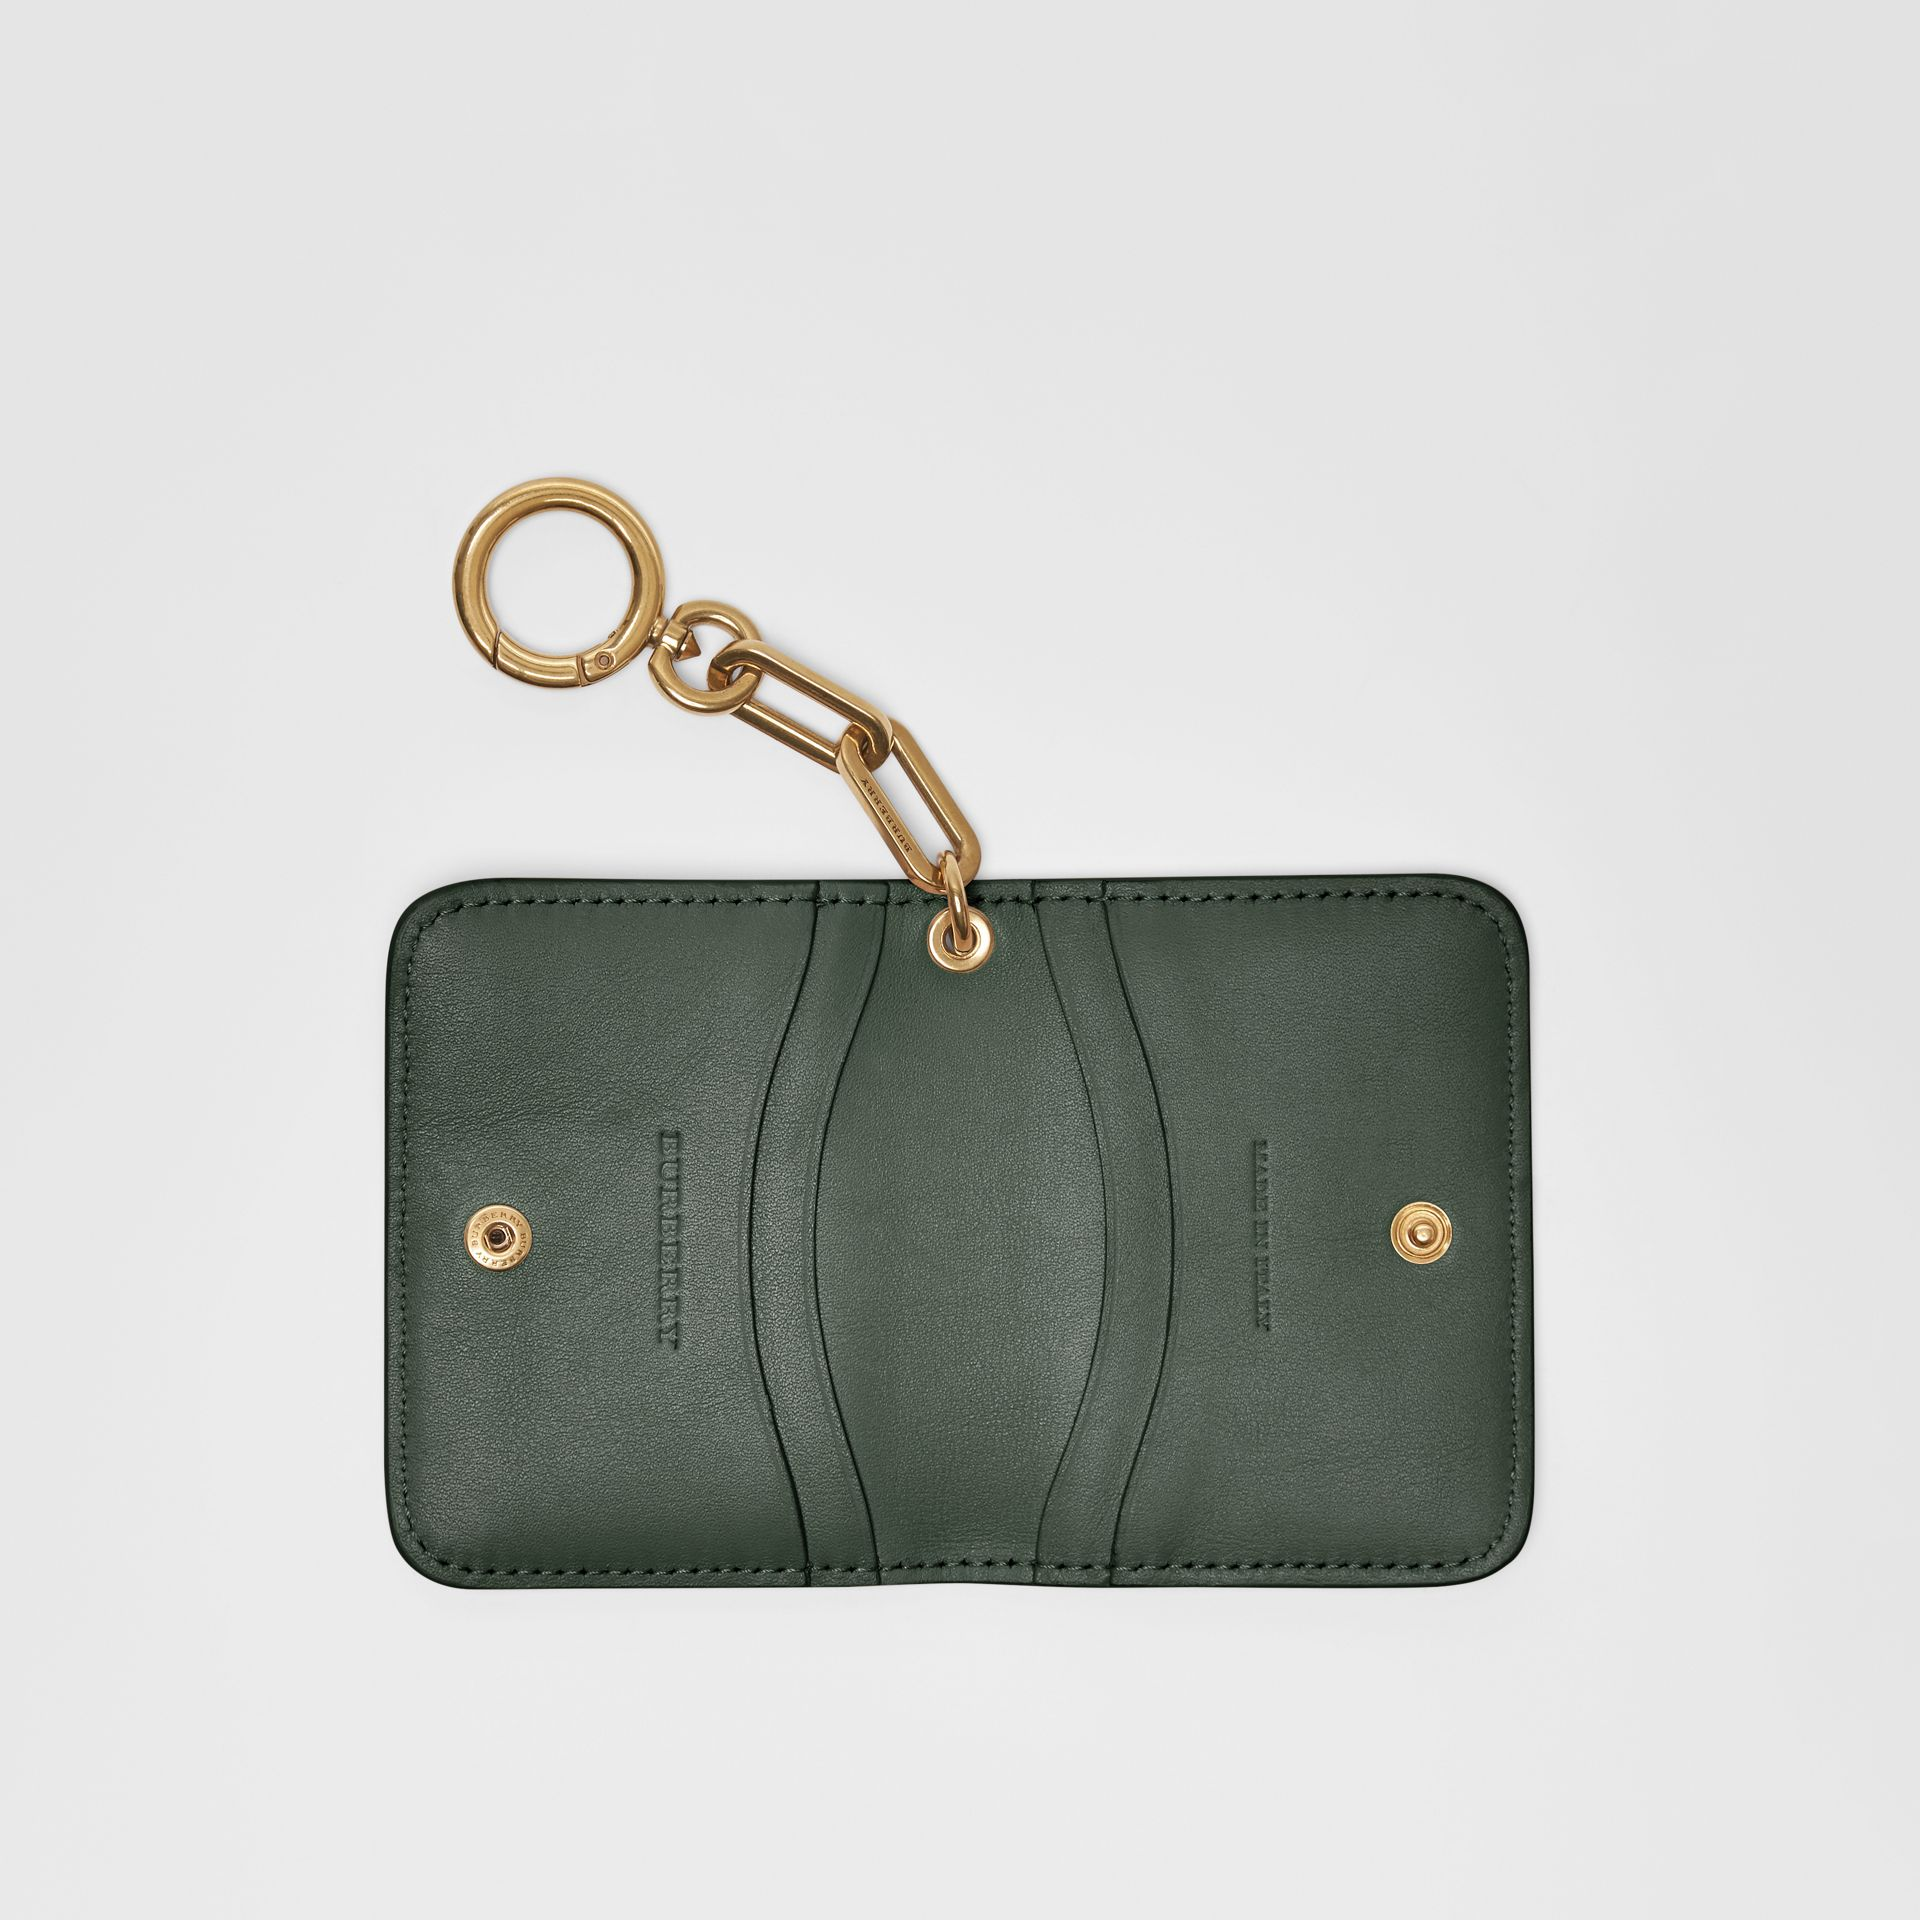 Link Detail Patent Leather ID Card Case Charm in Dark Forest Green - Women | Burberry United States - gallery image 3